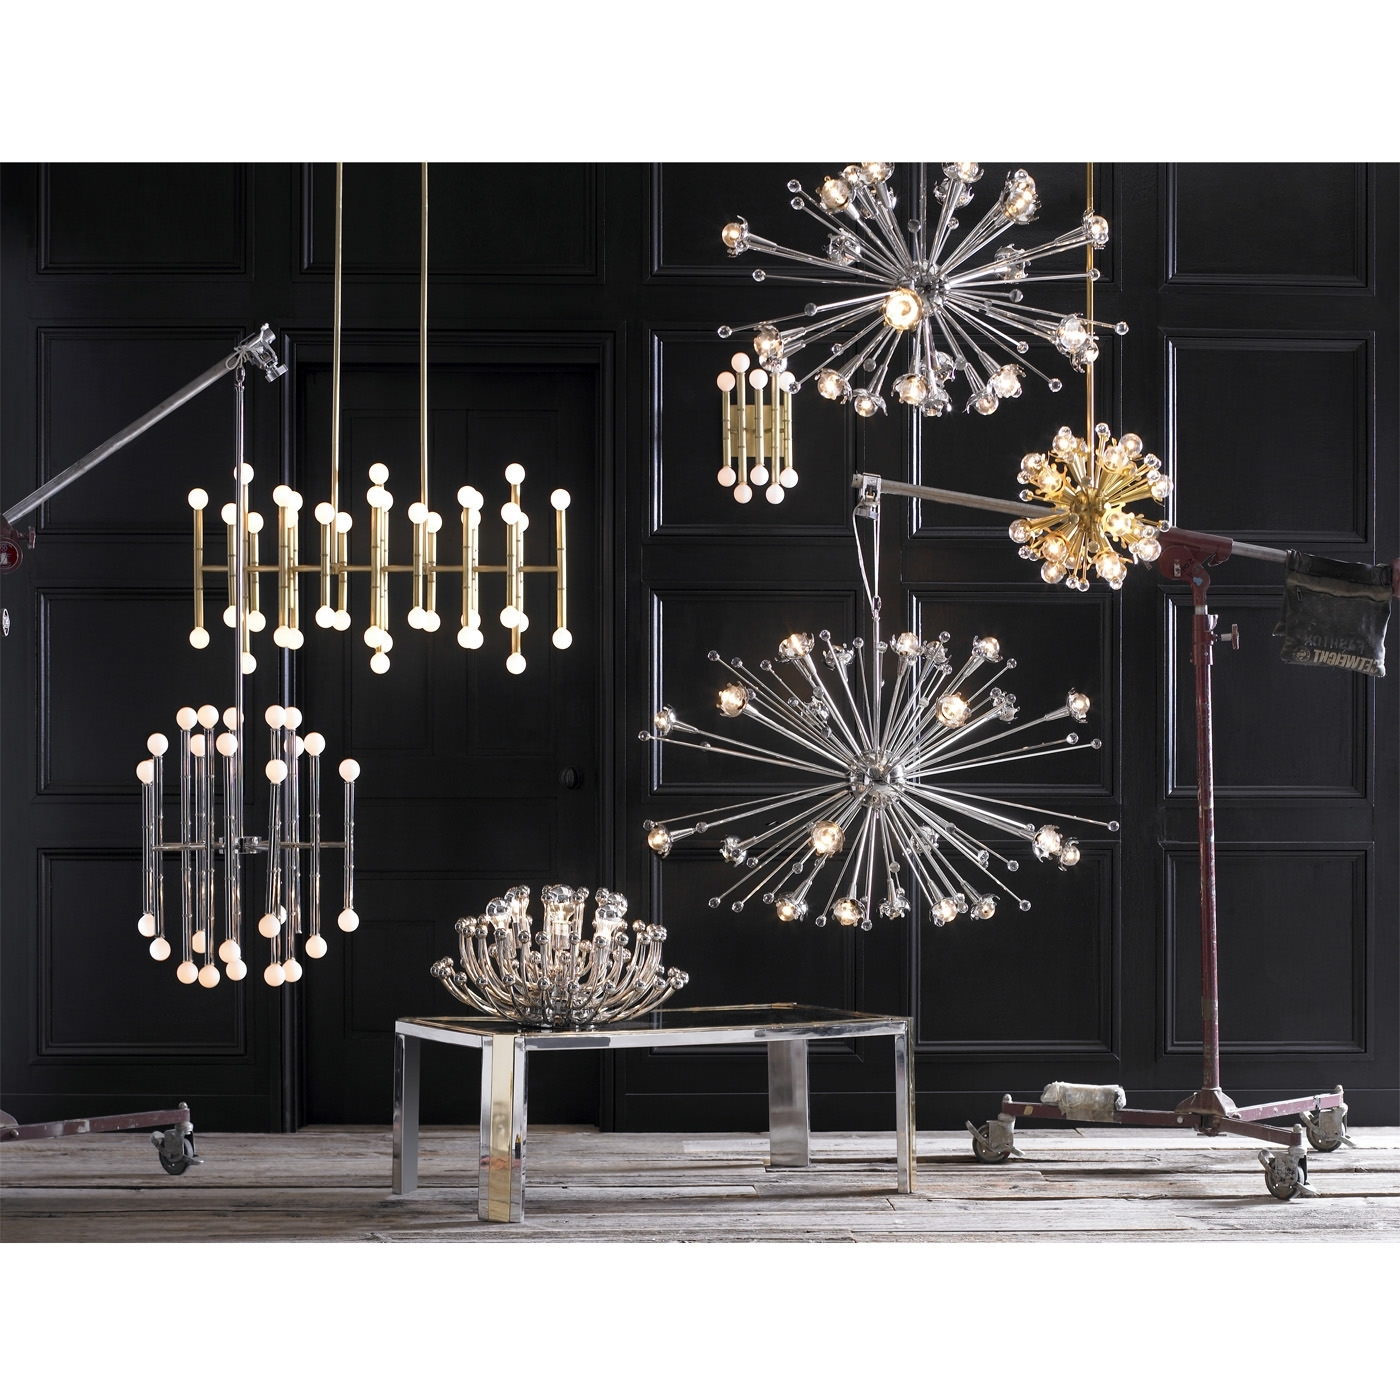 Jonathan Adler Regarding Giant Chandeliers (Gallery 10 of 15)